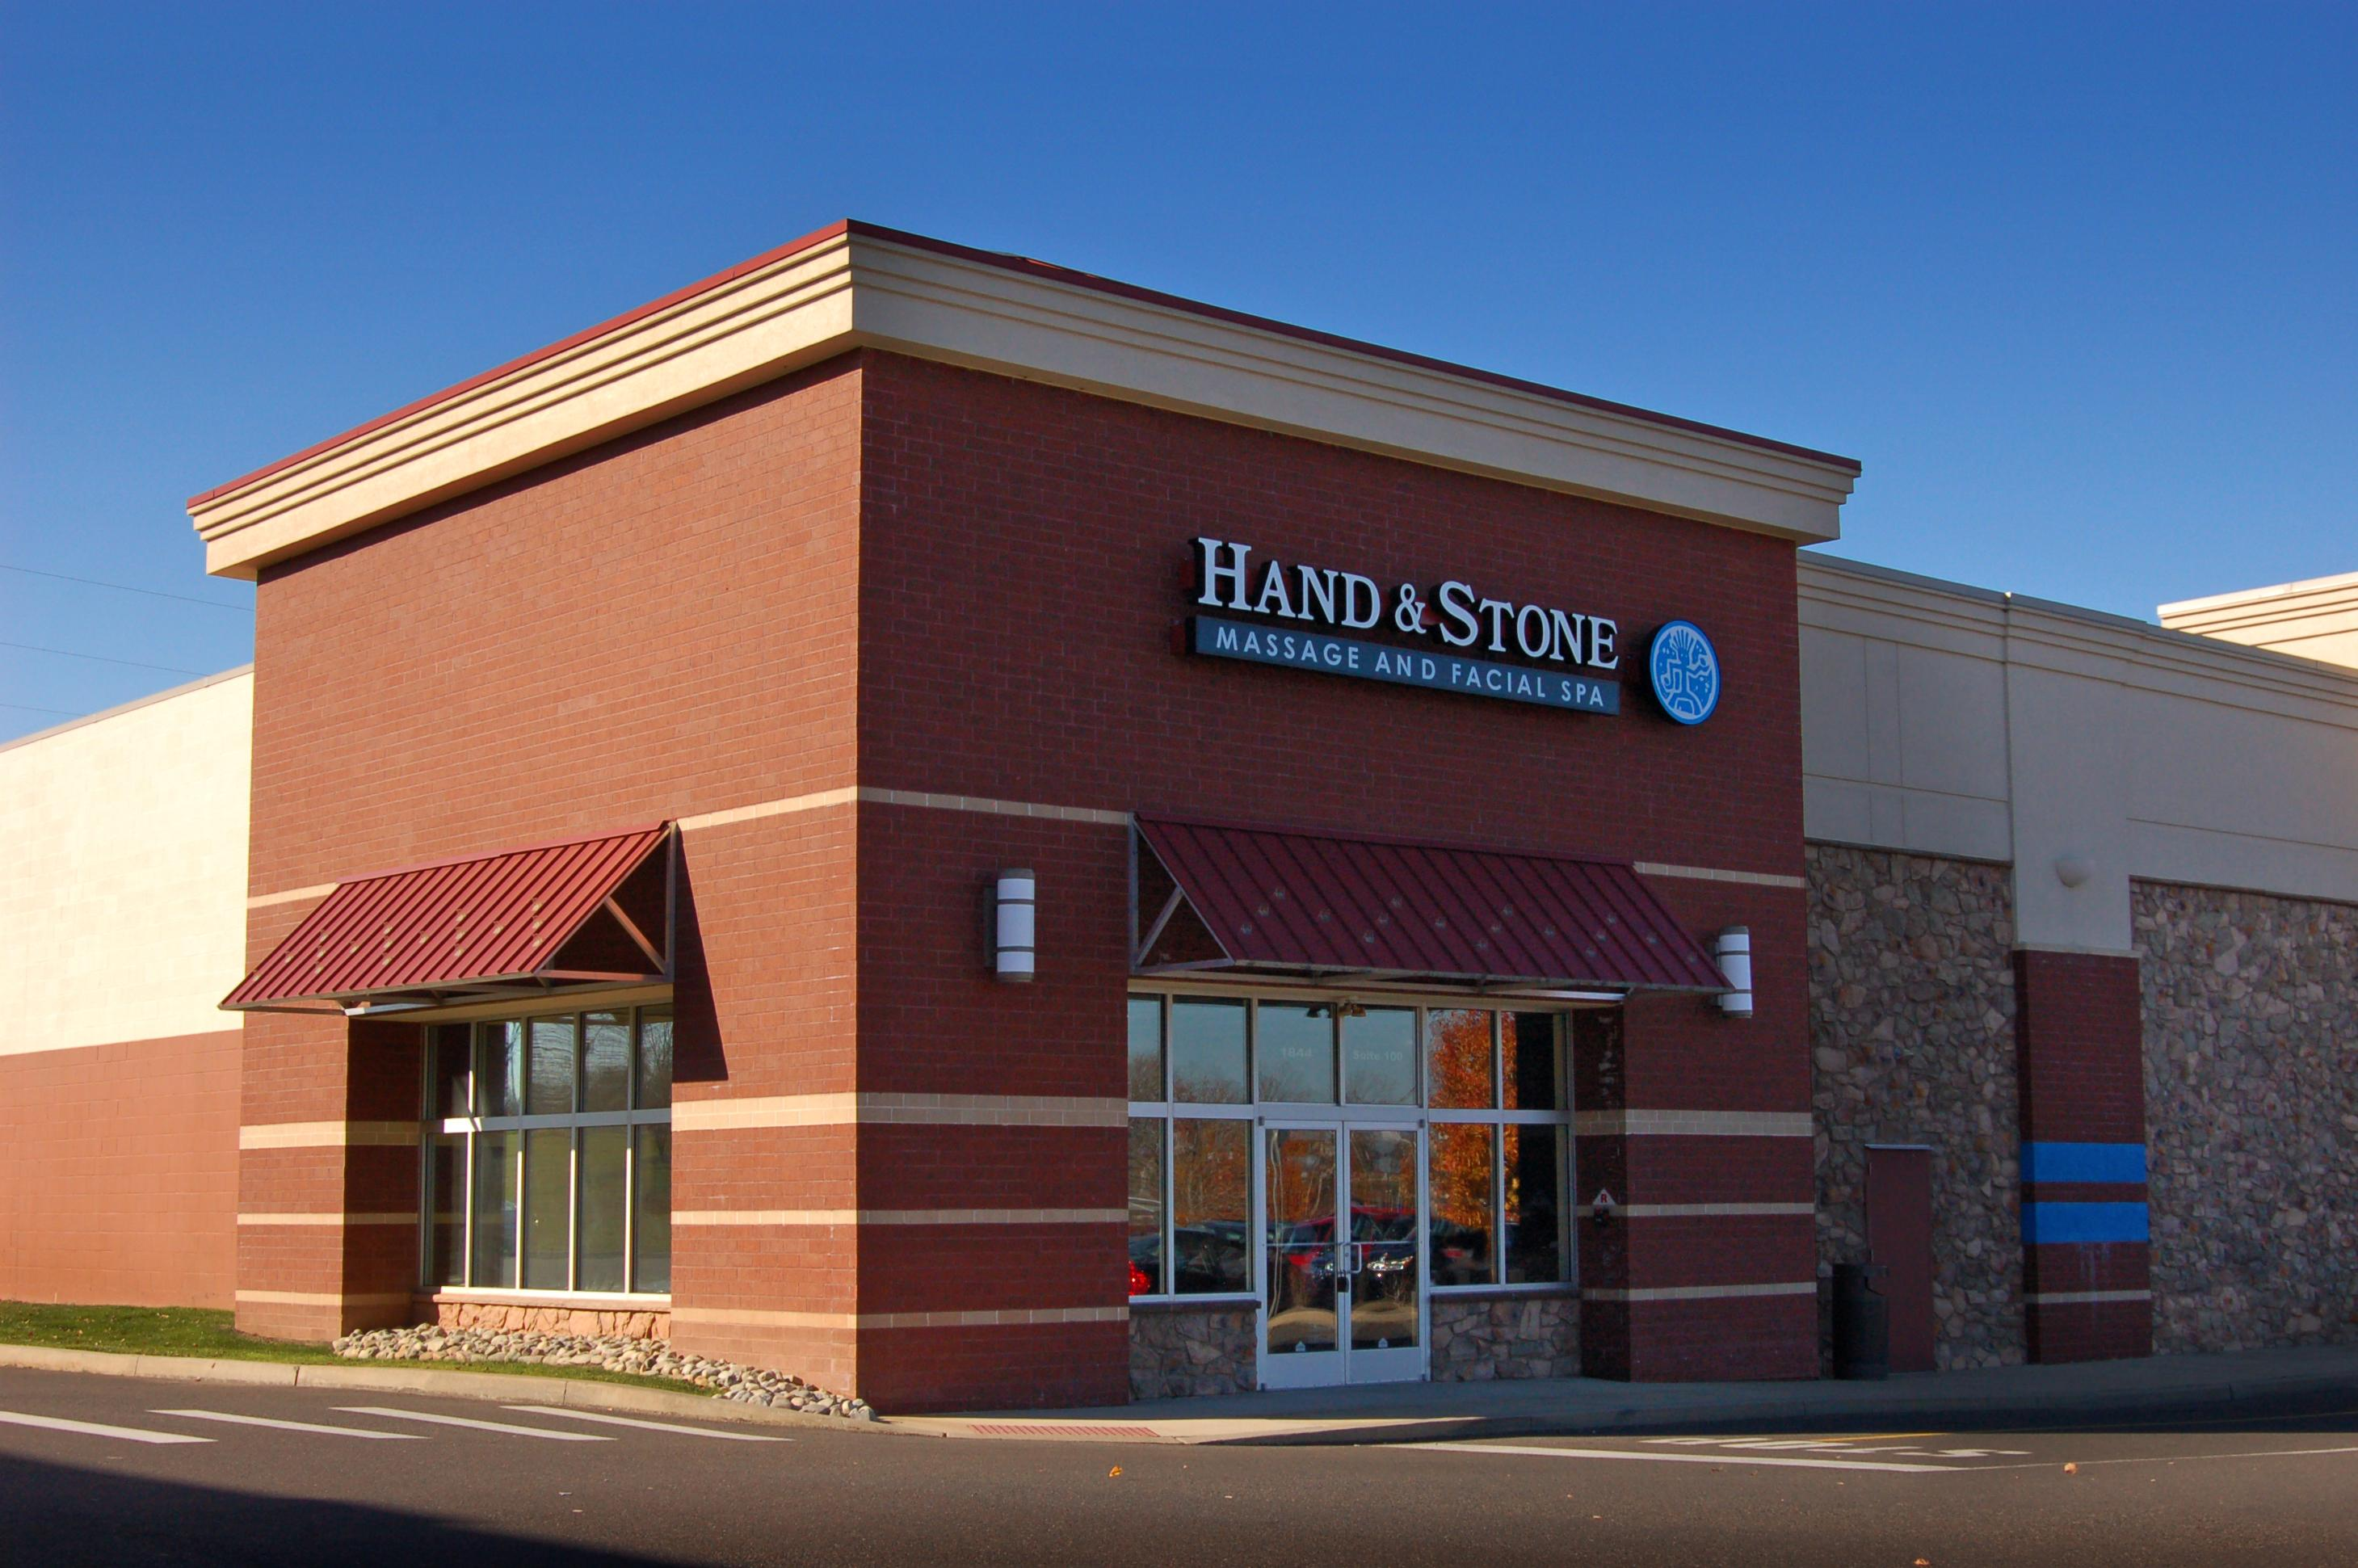 Granite Shops Near Me : Hand & Stone Massage and Facial Spa Coupons Royersford PA near me ...